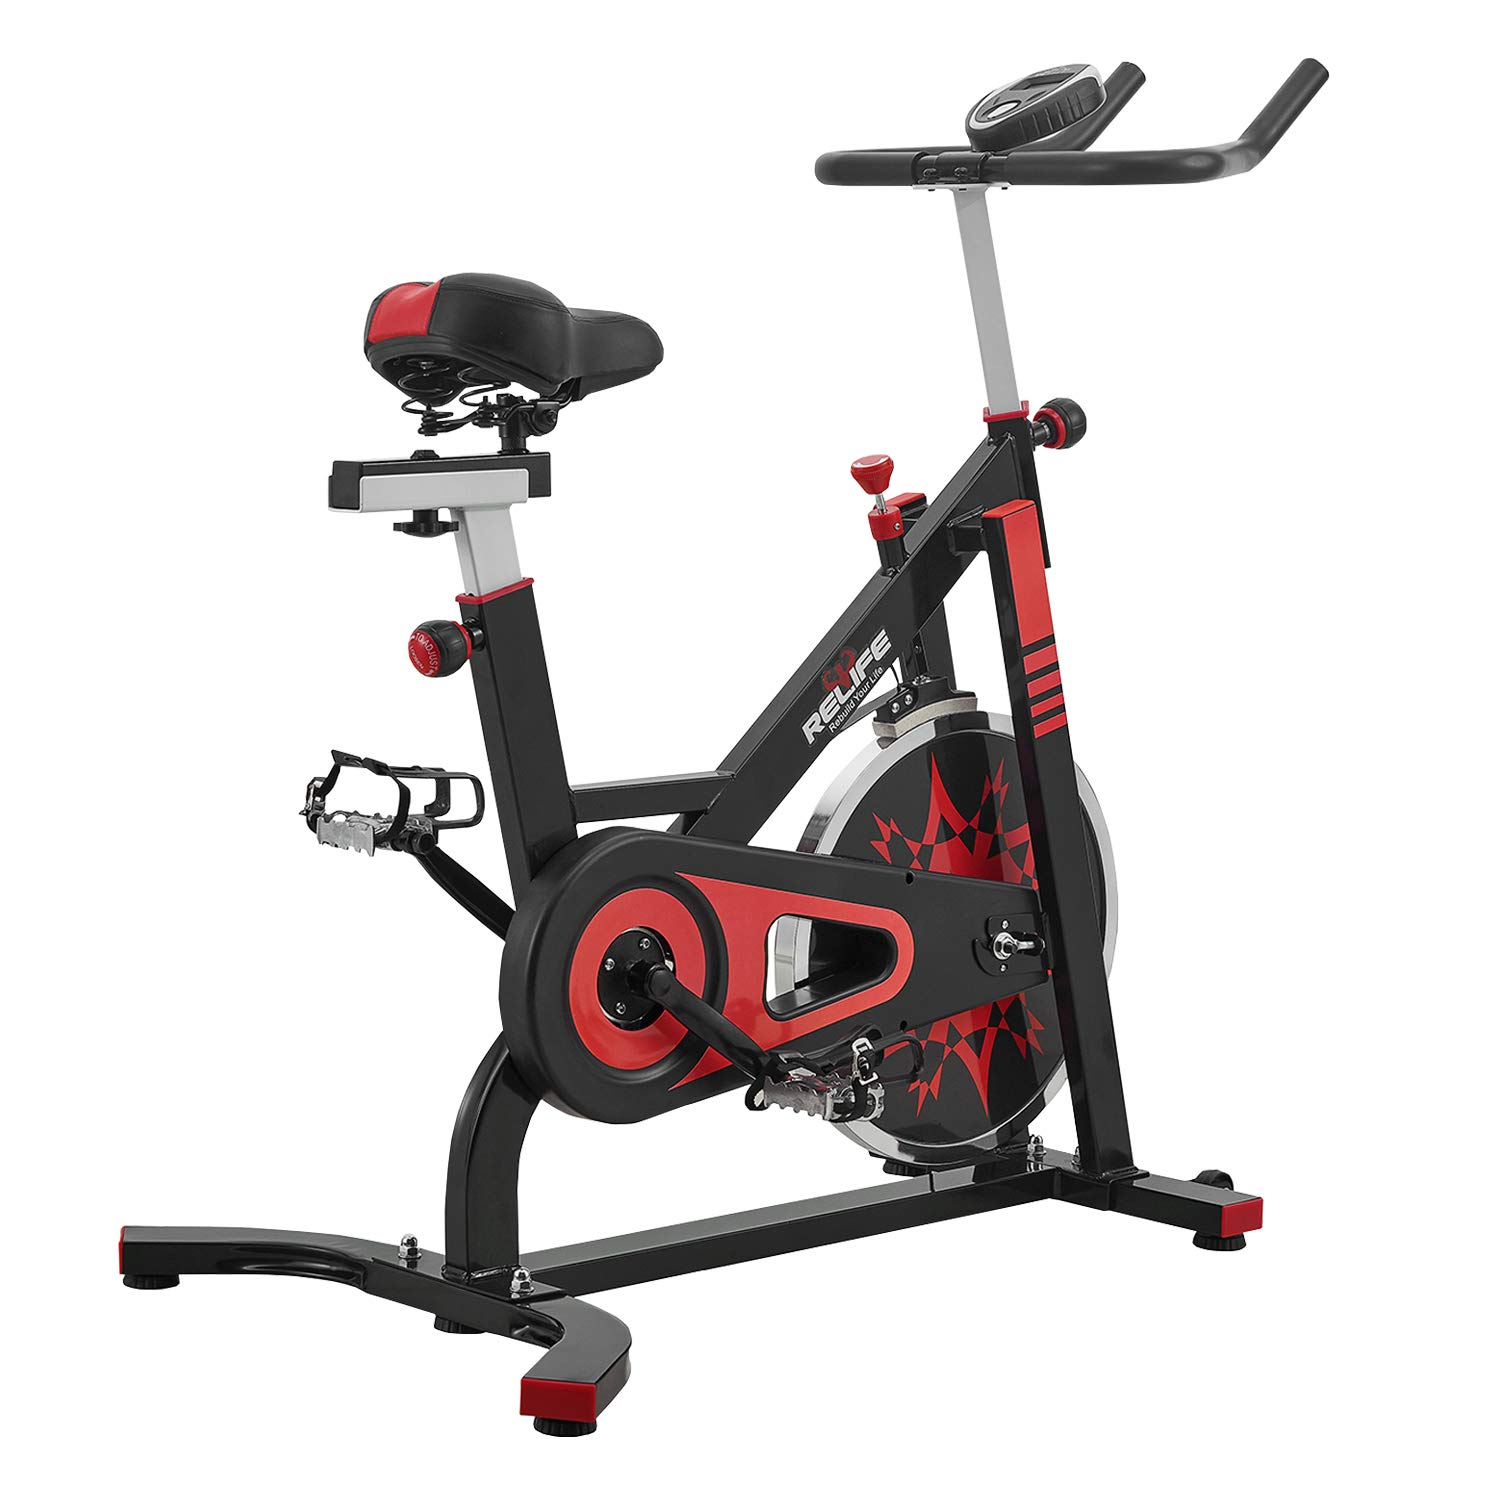 RELIFE REBUILD YOUR LIFE Spin Bike Stationary Indoor Cycling Gym Resistance Workout Home Gym Fitness Machine Exercise Bike by RELIFE REBUILD YOUR LIFE (Image #1)